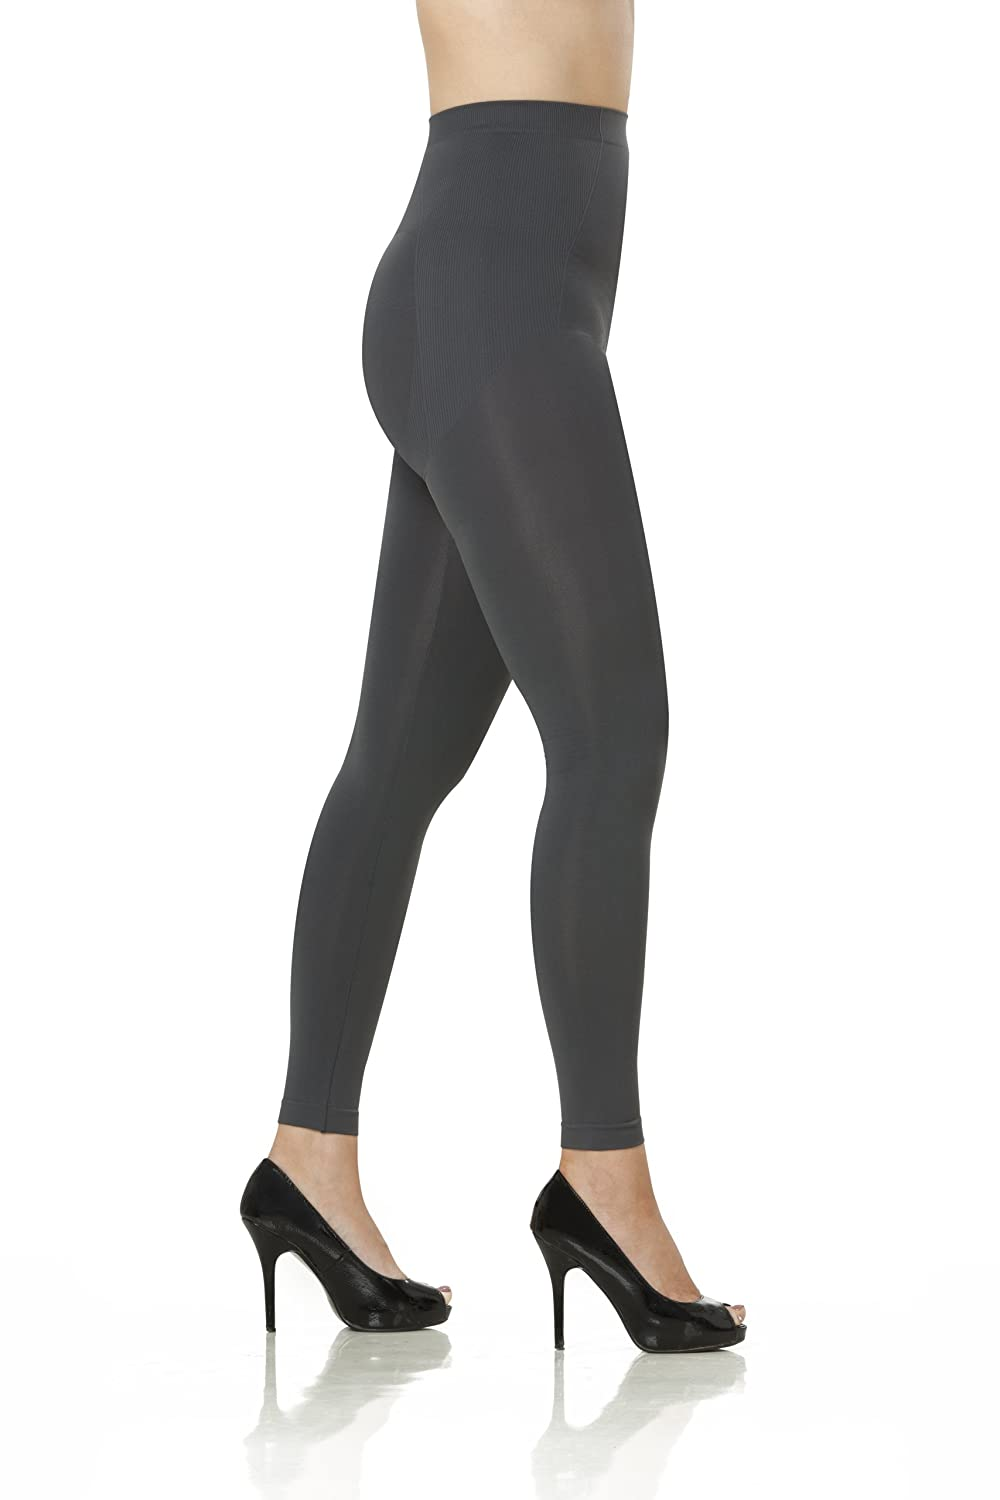 Sleex Figurformende Leggings